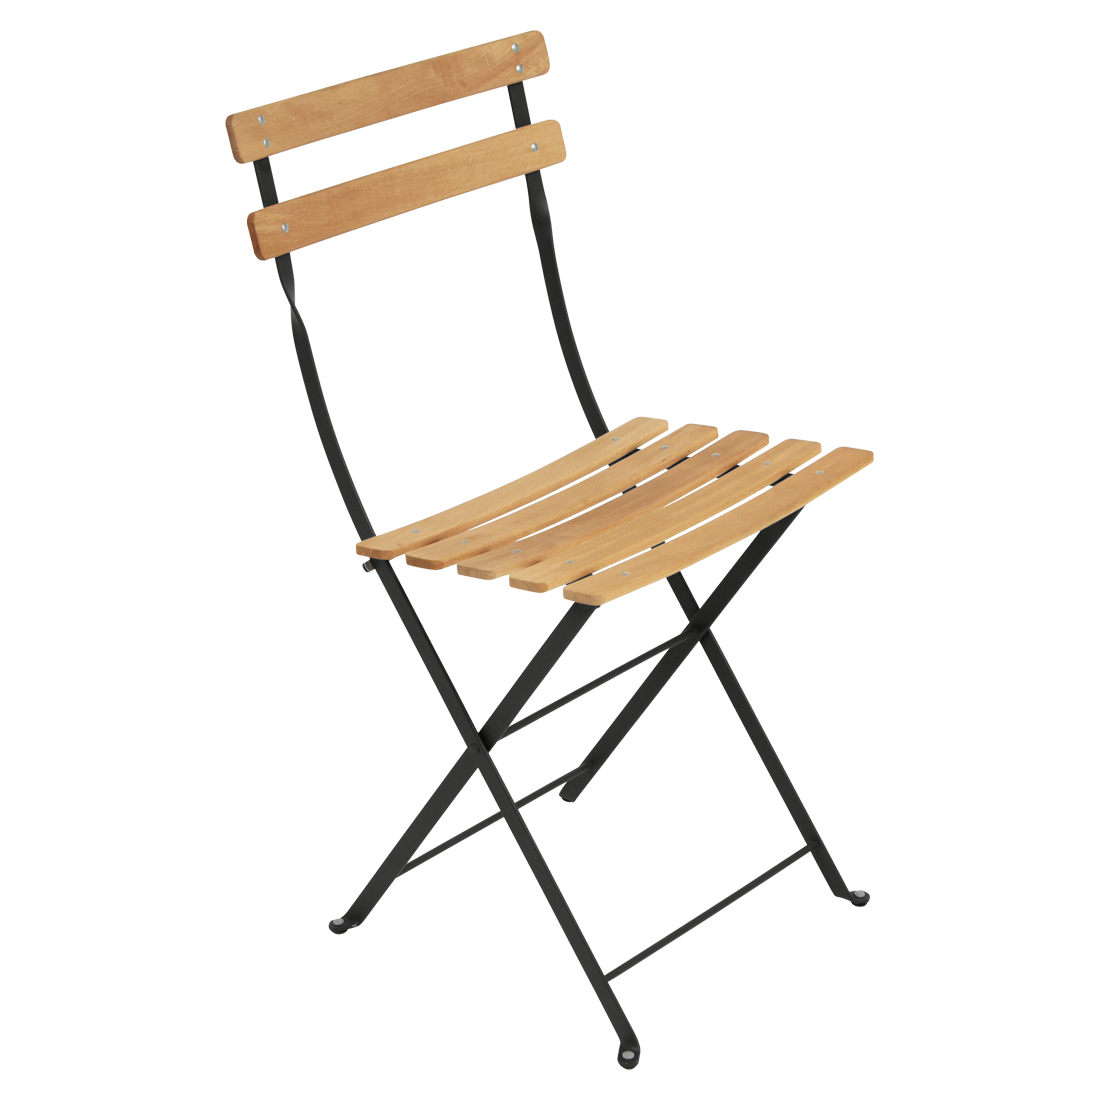 Exceptional Bistro Naturel Chair, Metal And Wood Chair, Outdoor Furniture